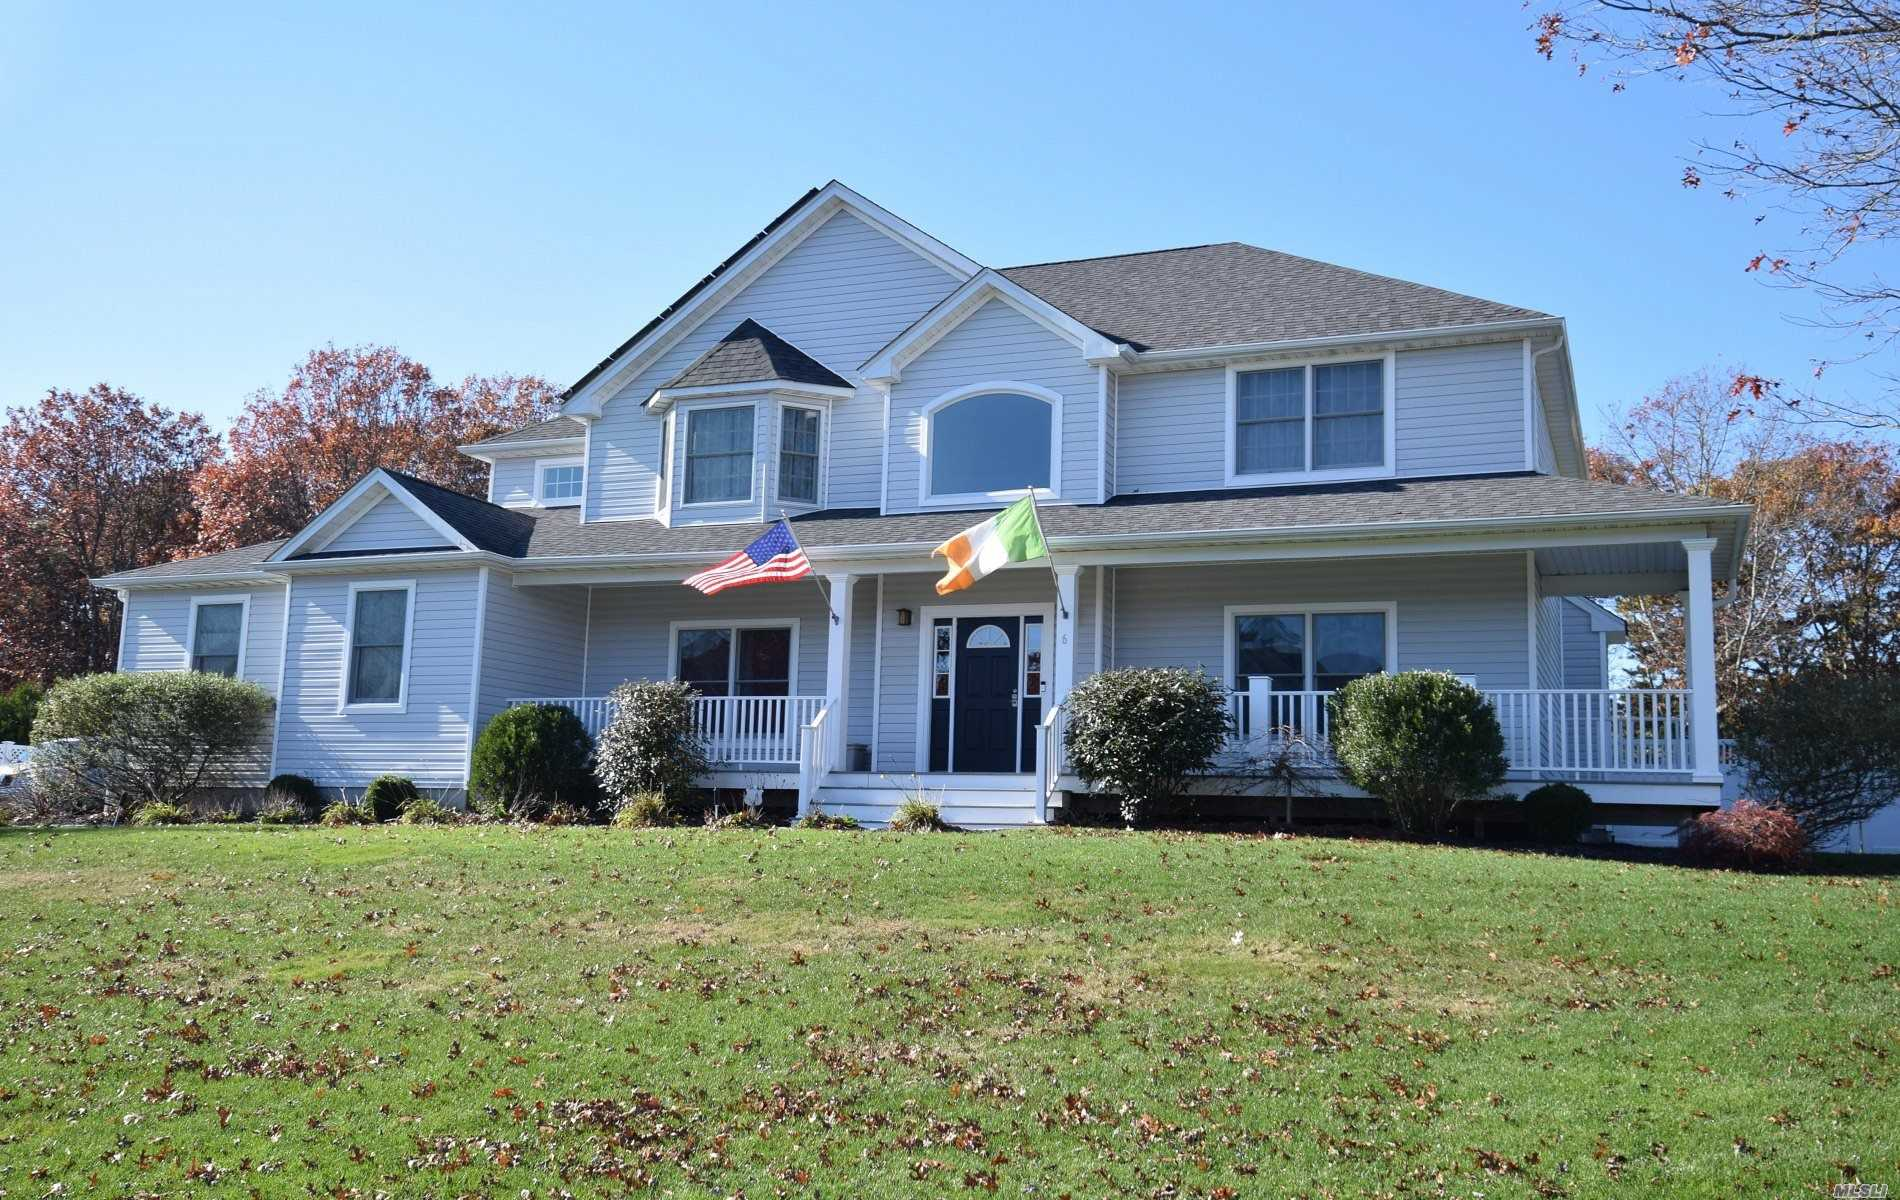 Photo of home for sale at 6 Boisenberry Ln, Center Moriches NY